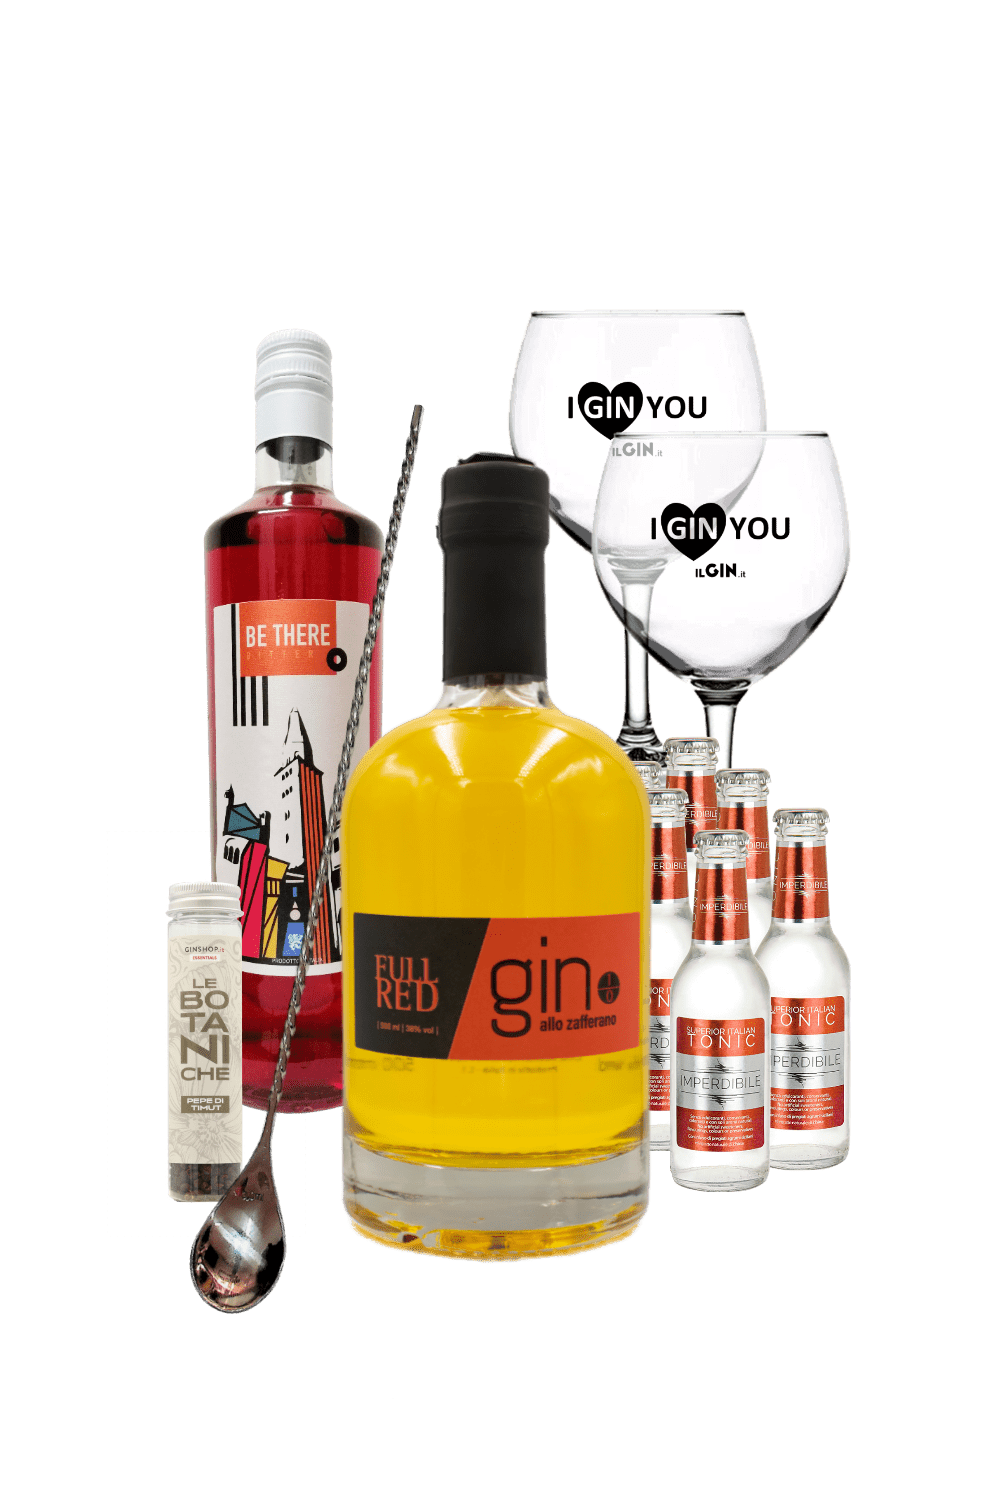 Full Red Gin – Little Red Riding Hood